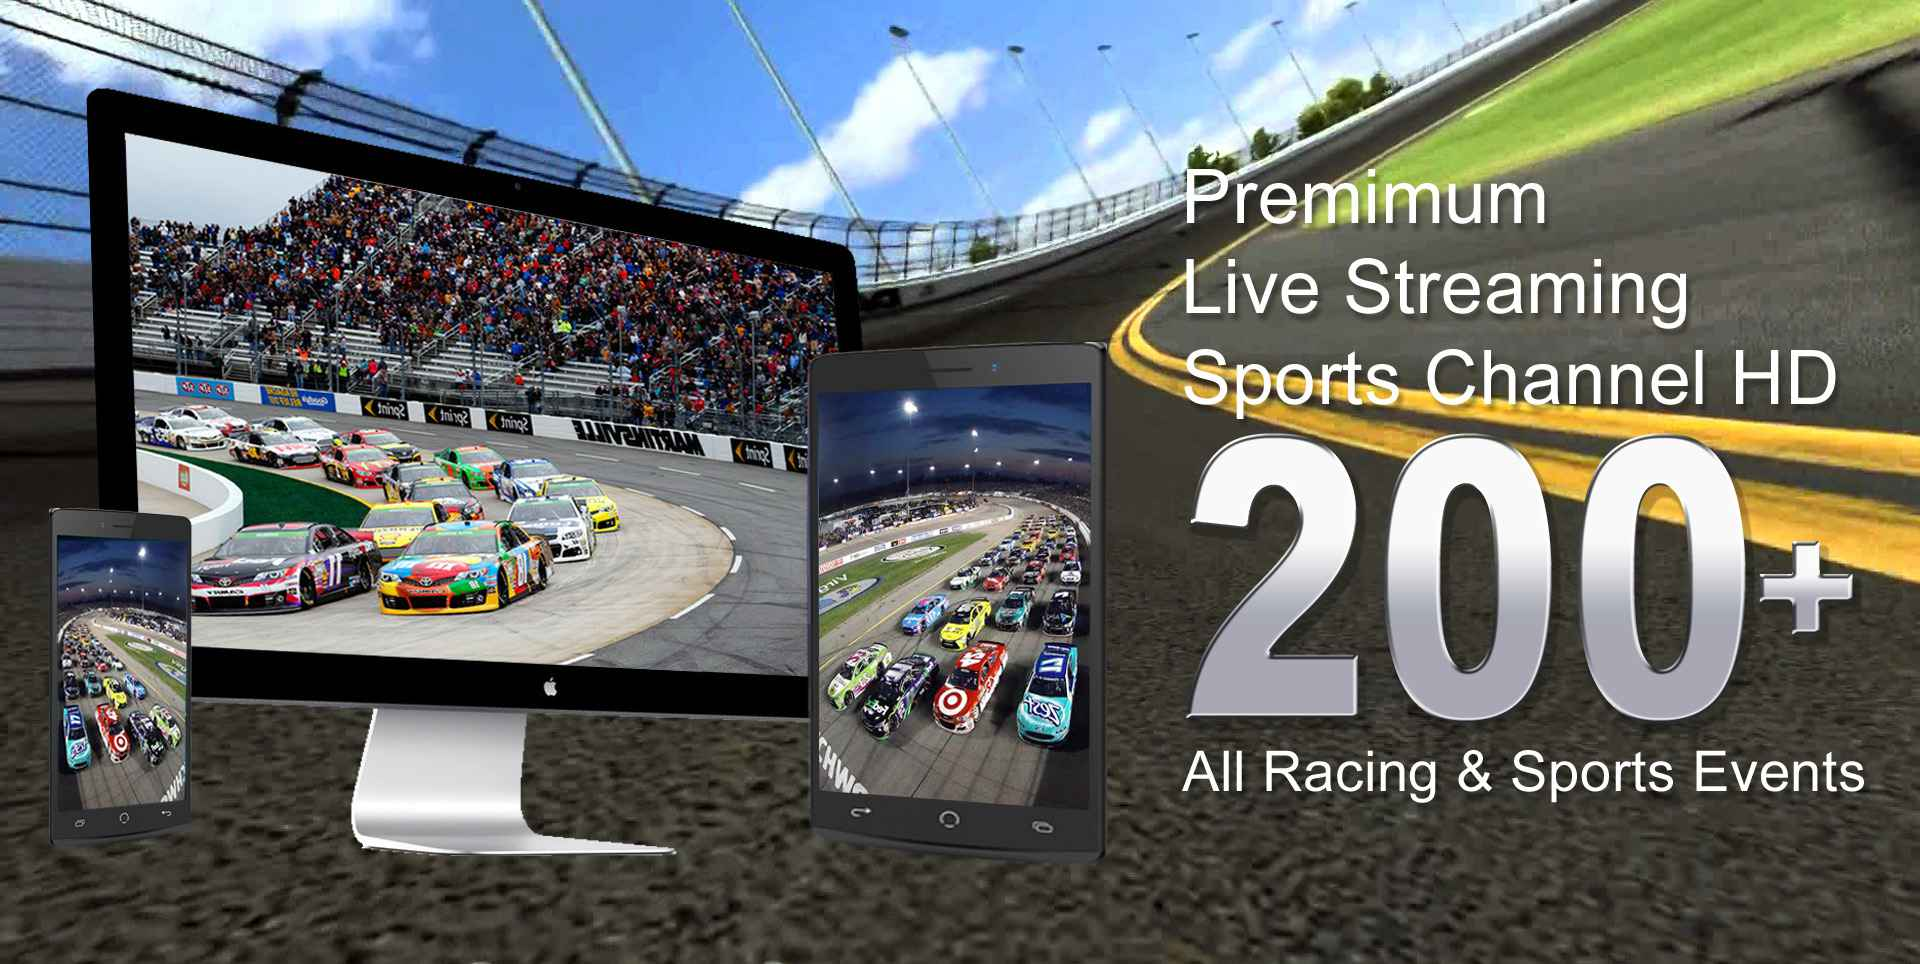 Sprintcup Pure Michigan 400 Race 2015 Live